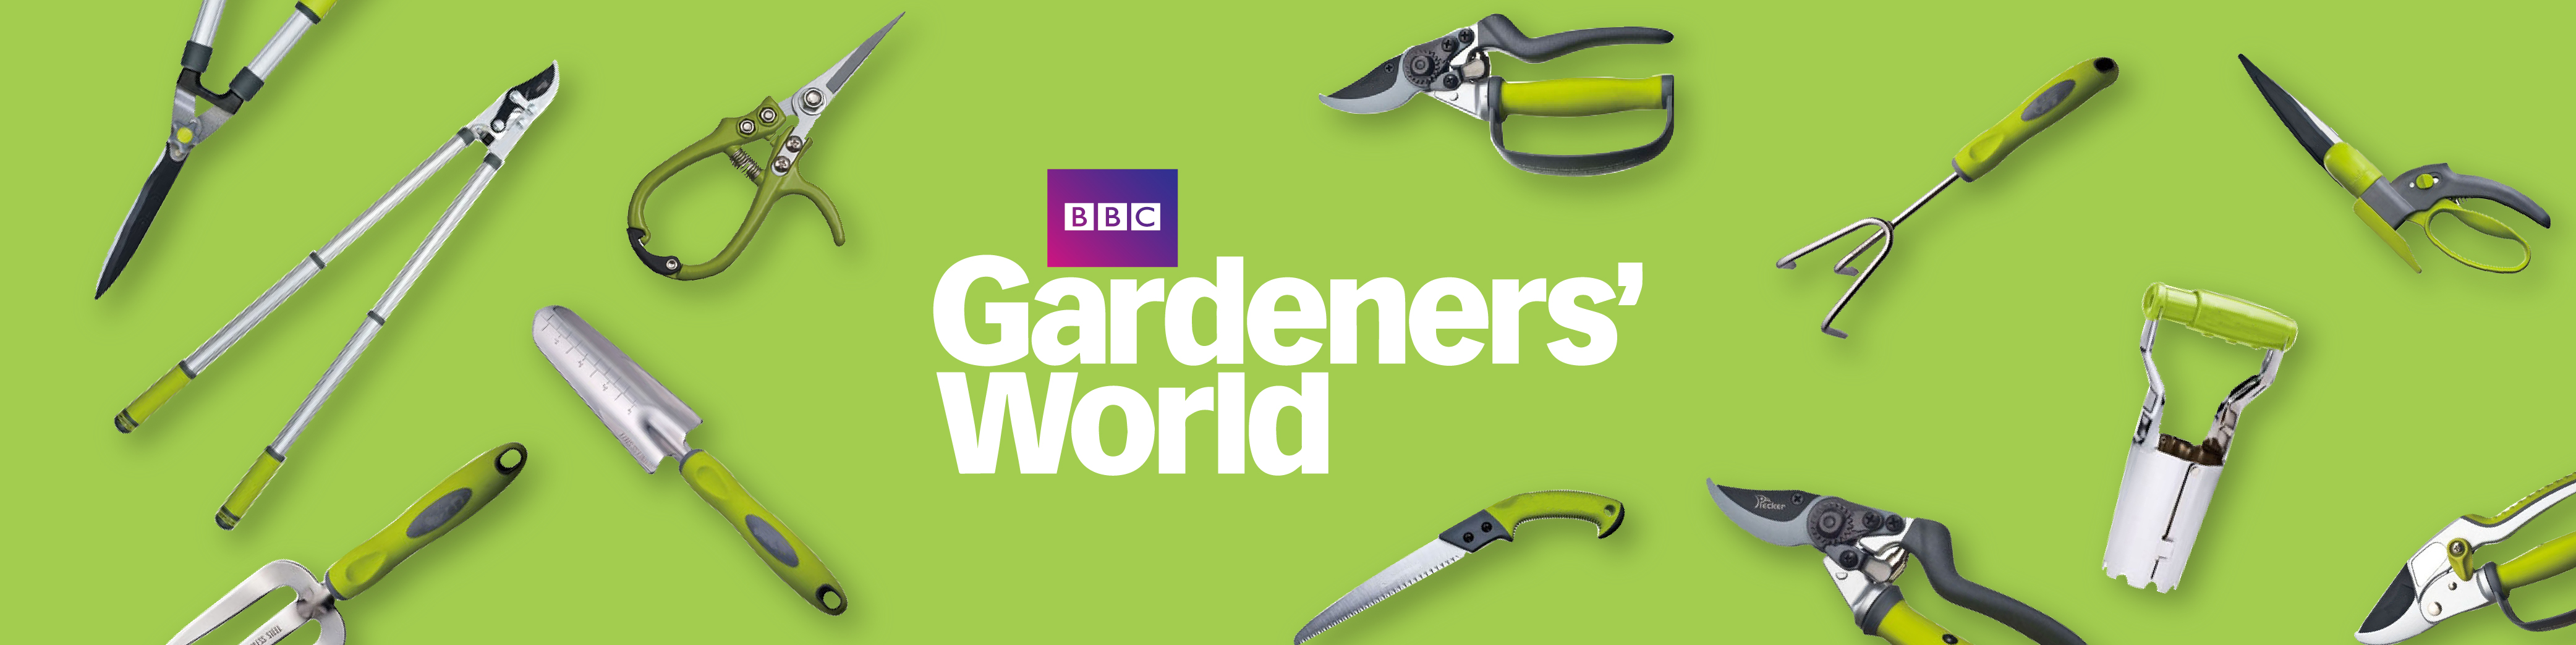 BBC Gardeners World Logo